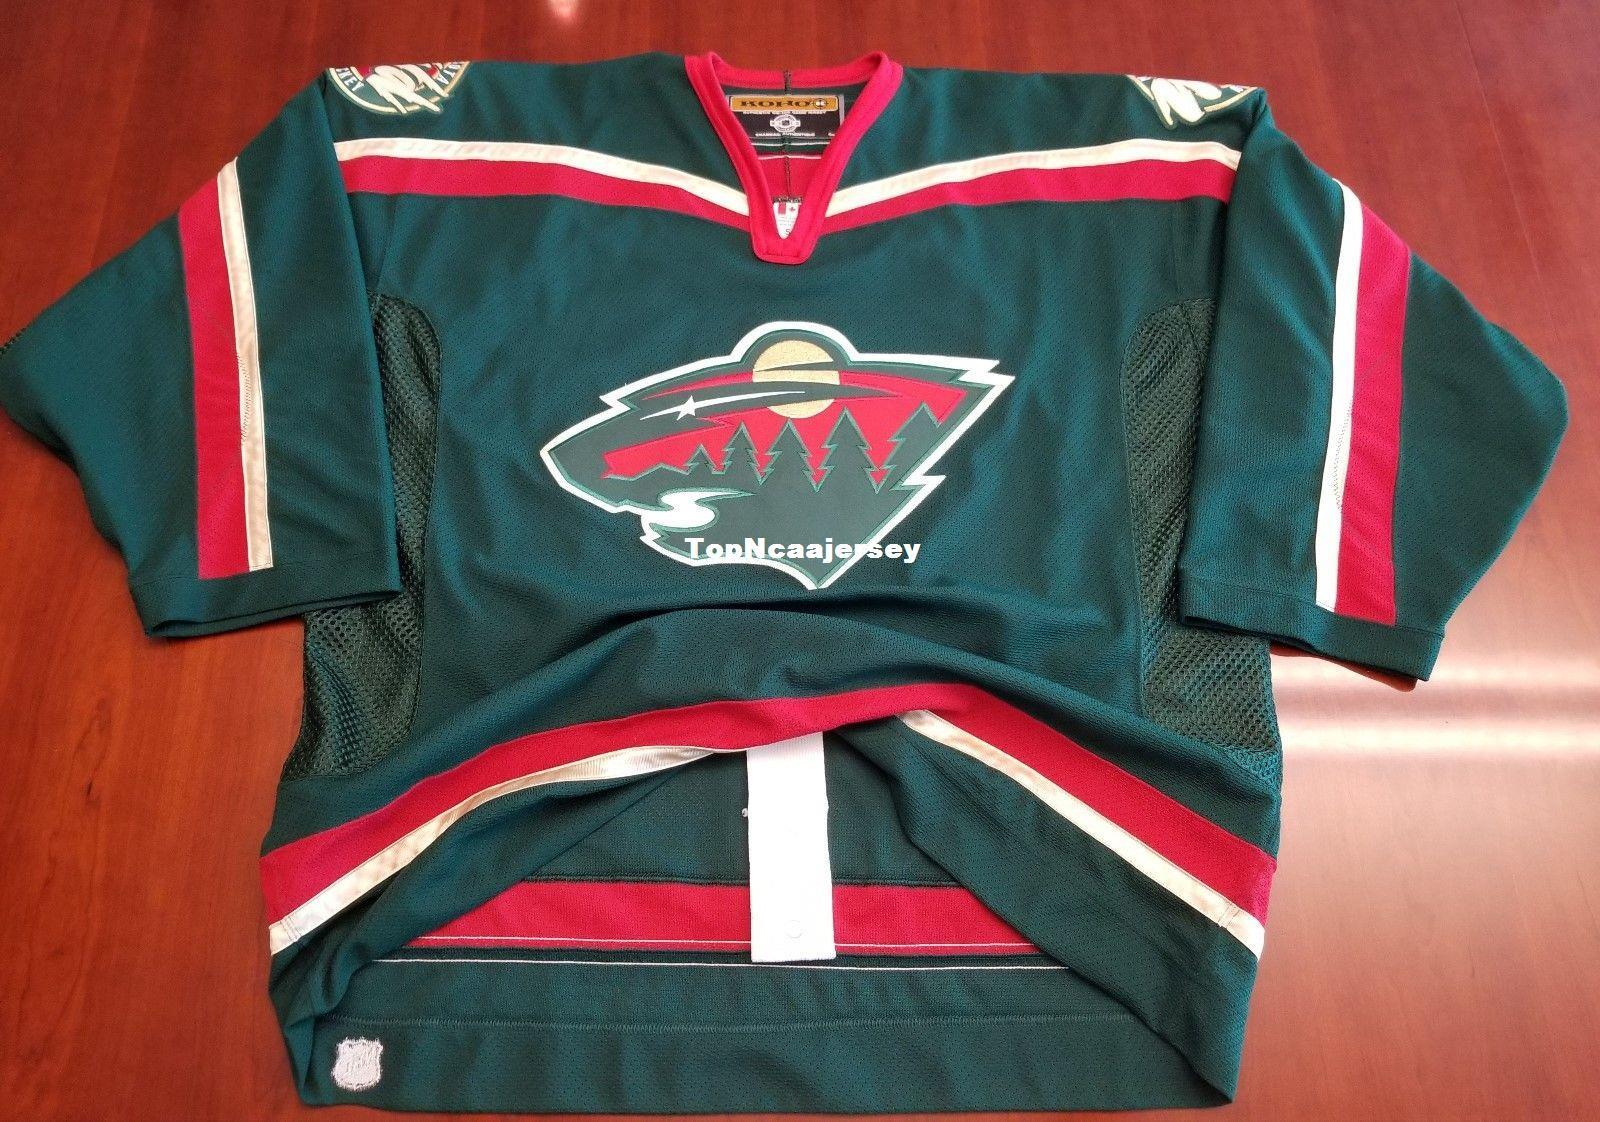 8e2af3158d4 2019 Wholesale Minnesota Wild Vintage Koho Center Ice Authentic Pro Cheap  Hockey Jersey Mens Retro Jerseys From Topncaajersey